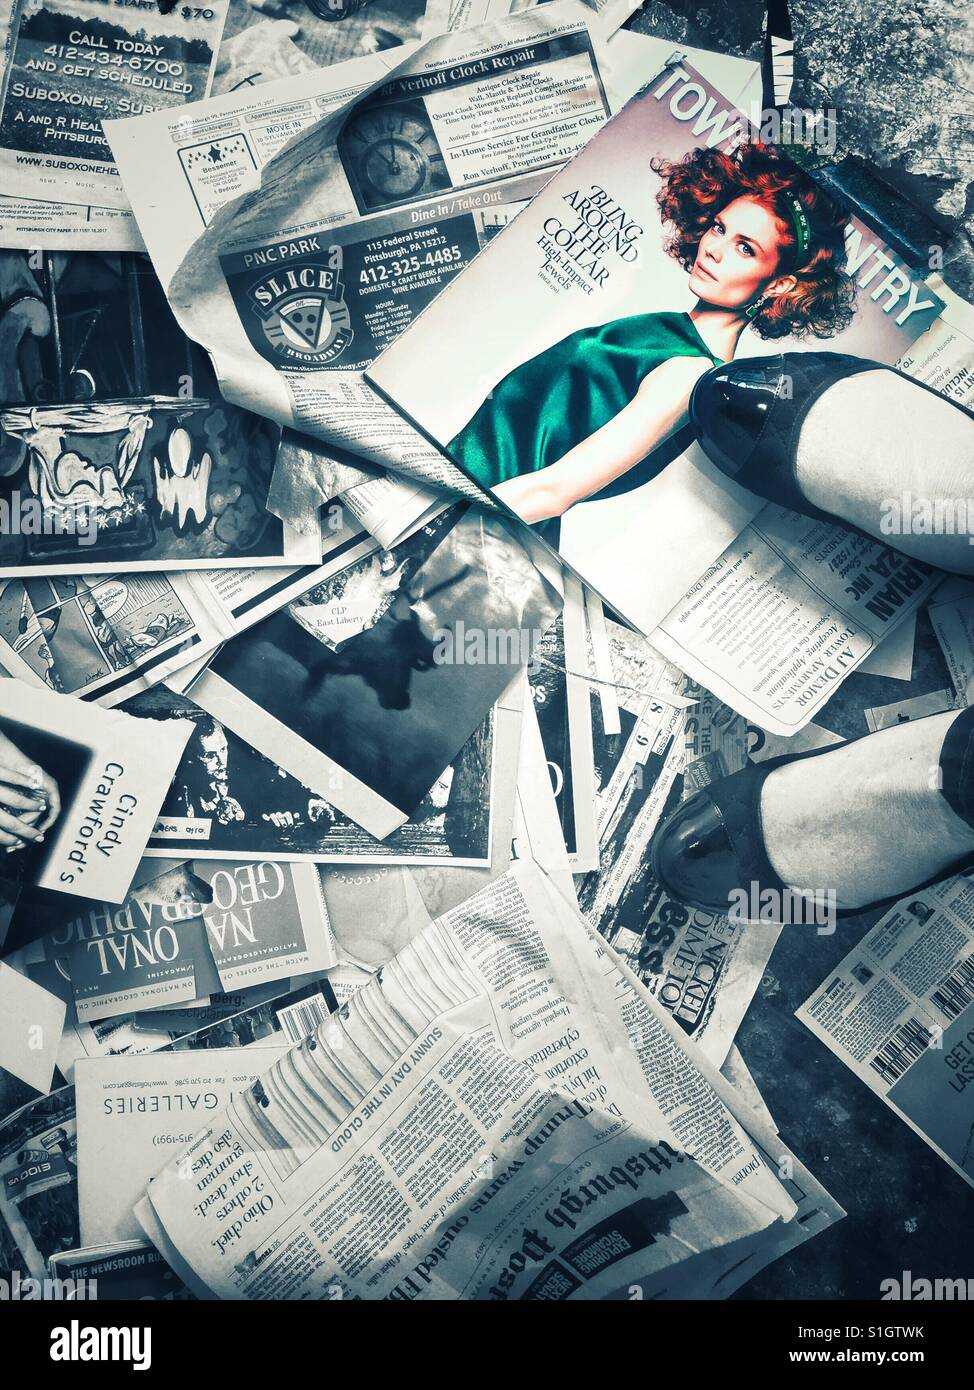 An abstract image of a woman standing on top of magazine clippings and newspapers strewn on the floor - Stock Image